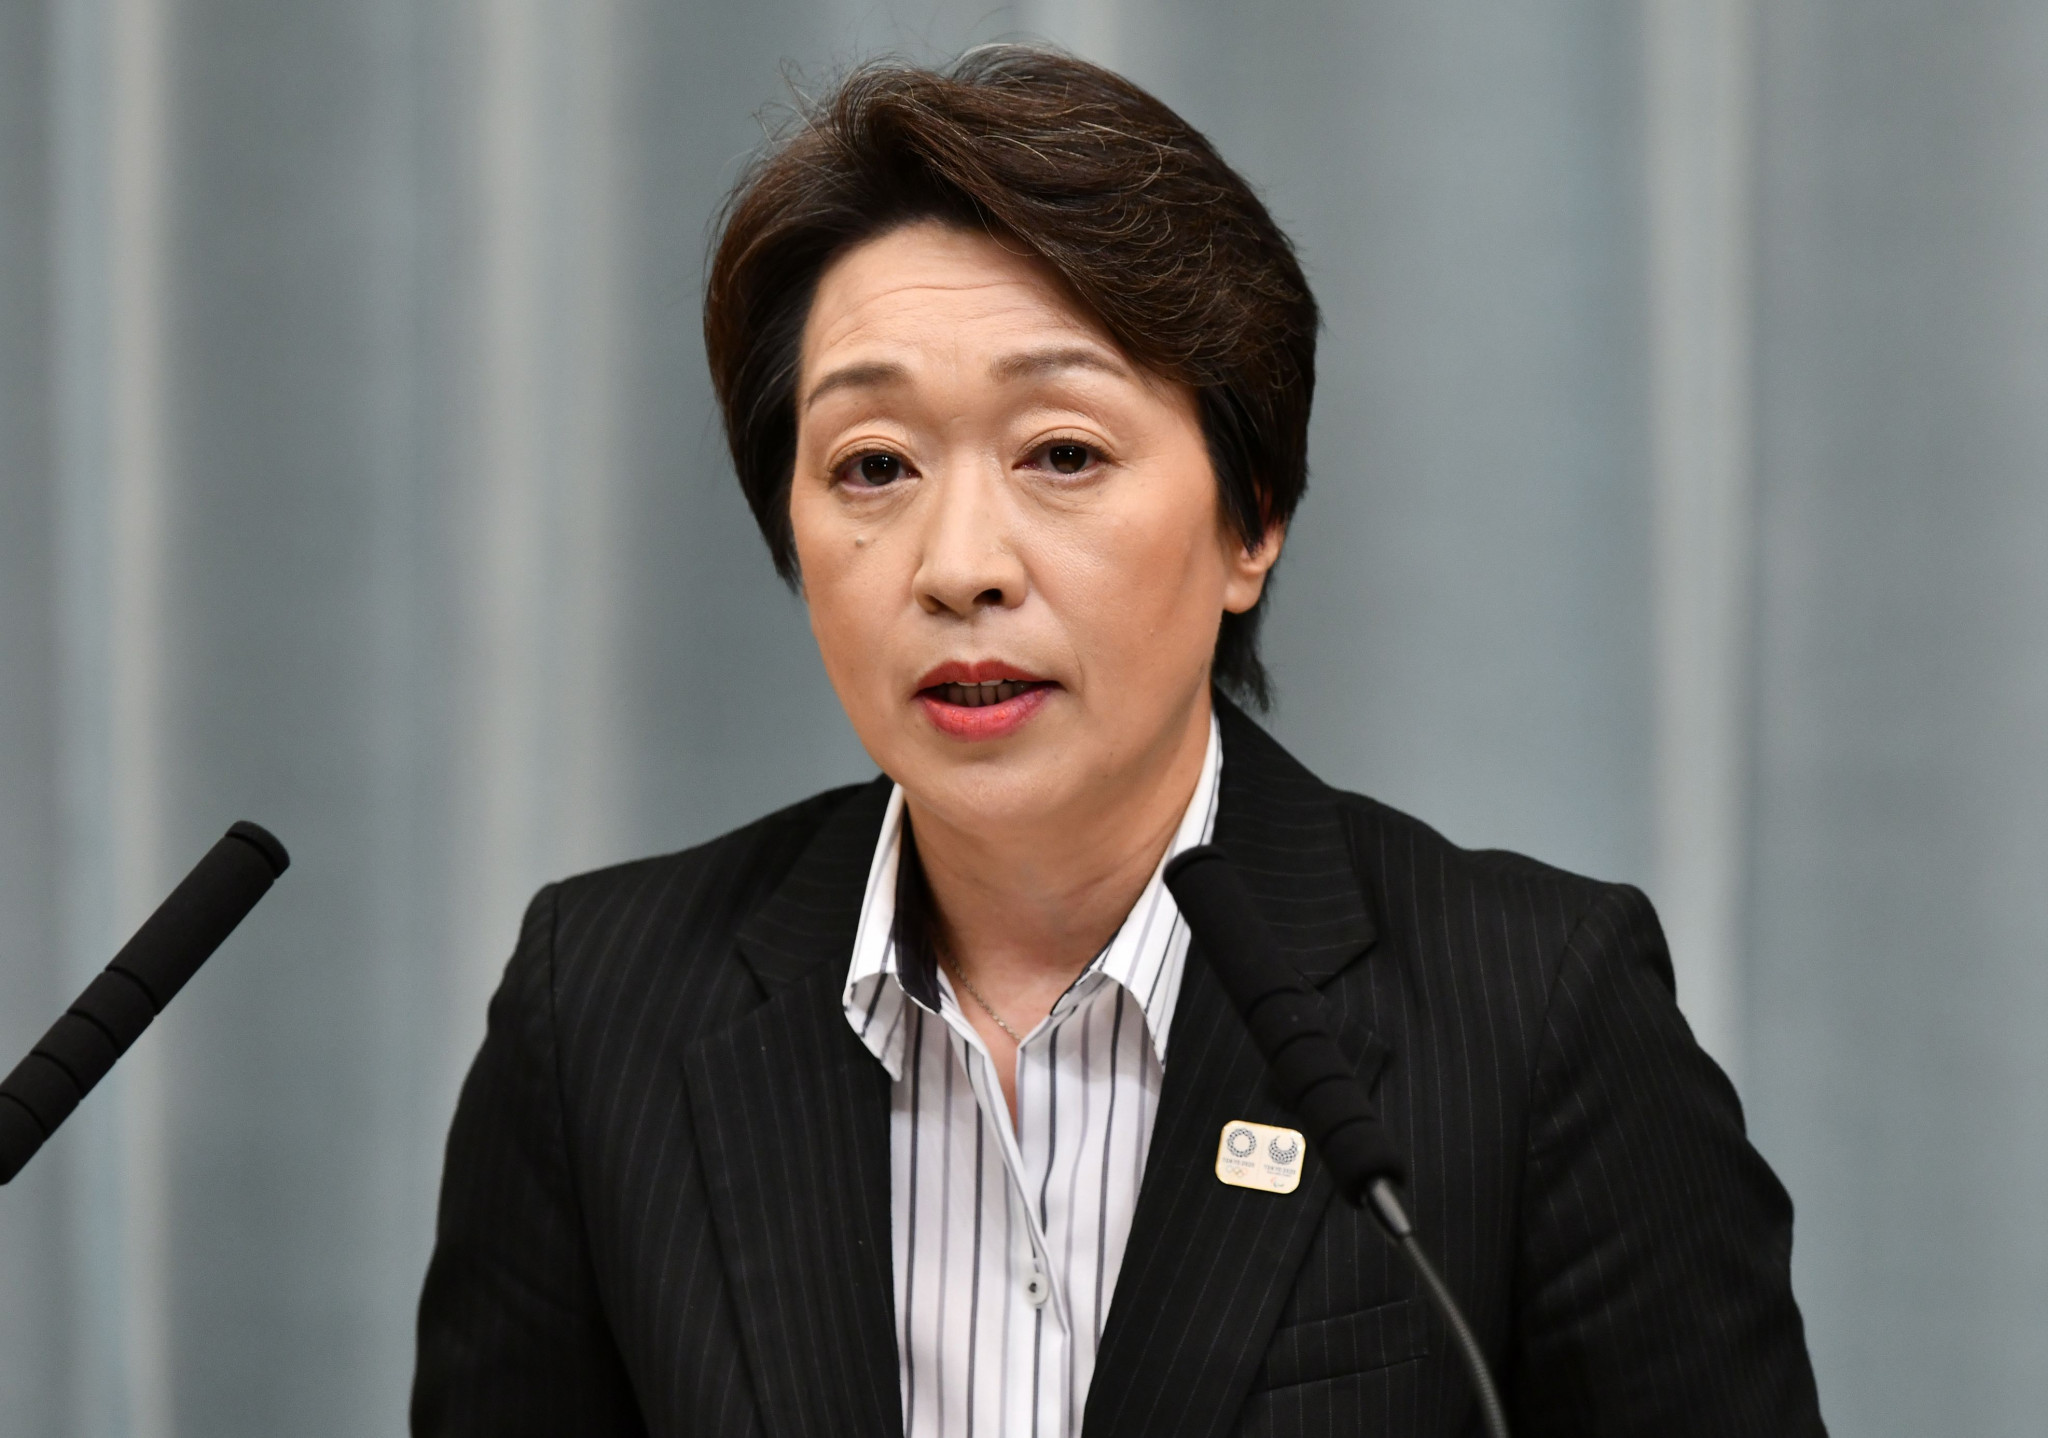 Japan's Olympics Minister Seiko Hashimoto last week backtracked after initially suggesting the Games could be delayed until the end of 2020 ©Getty Images